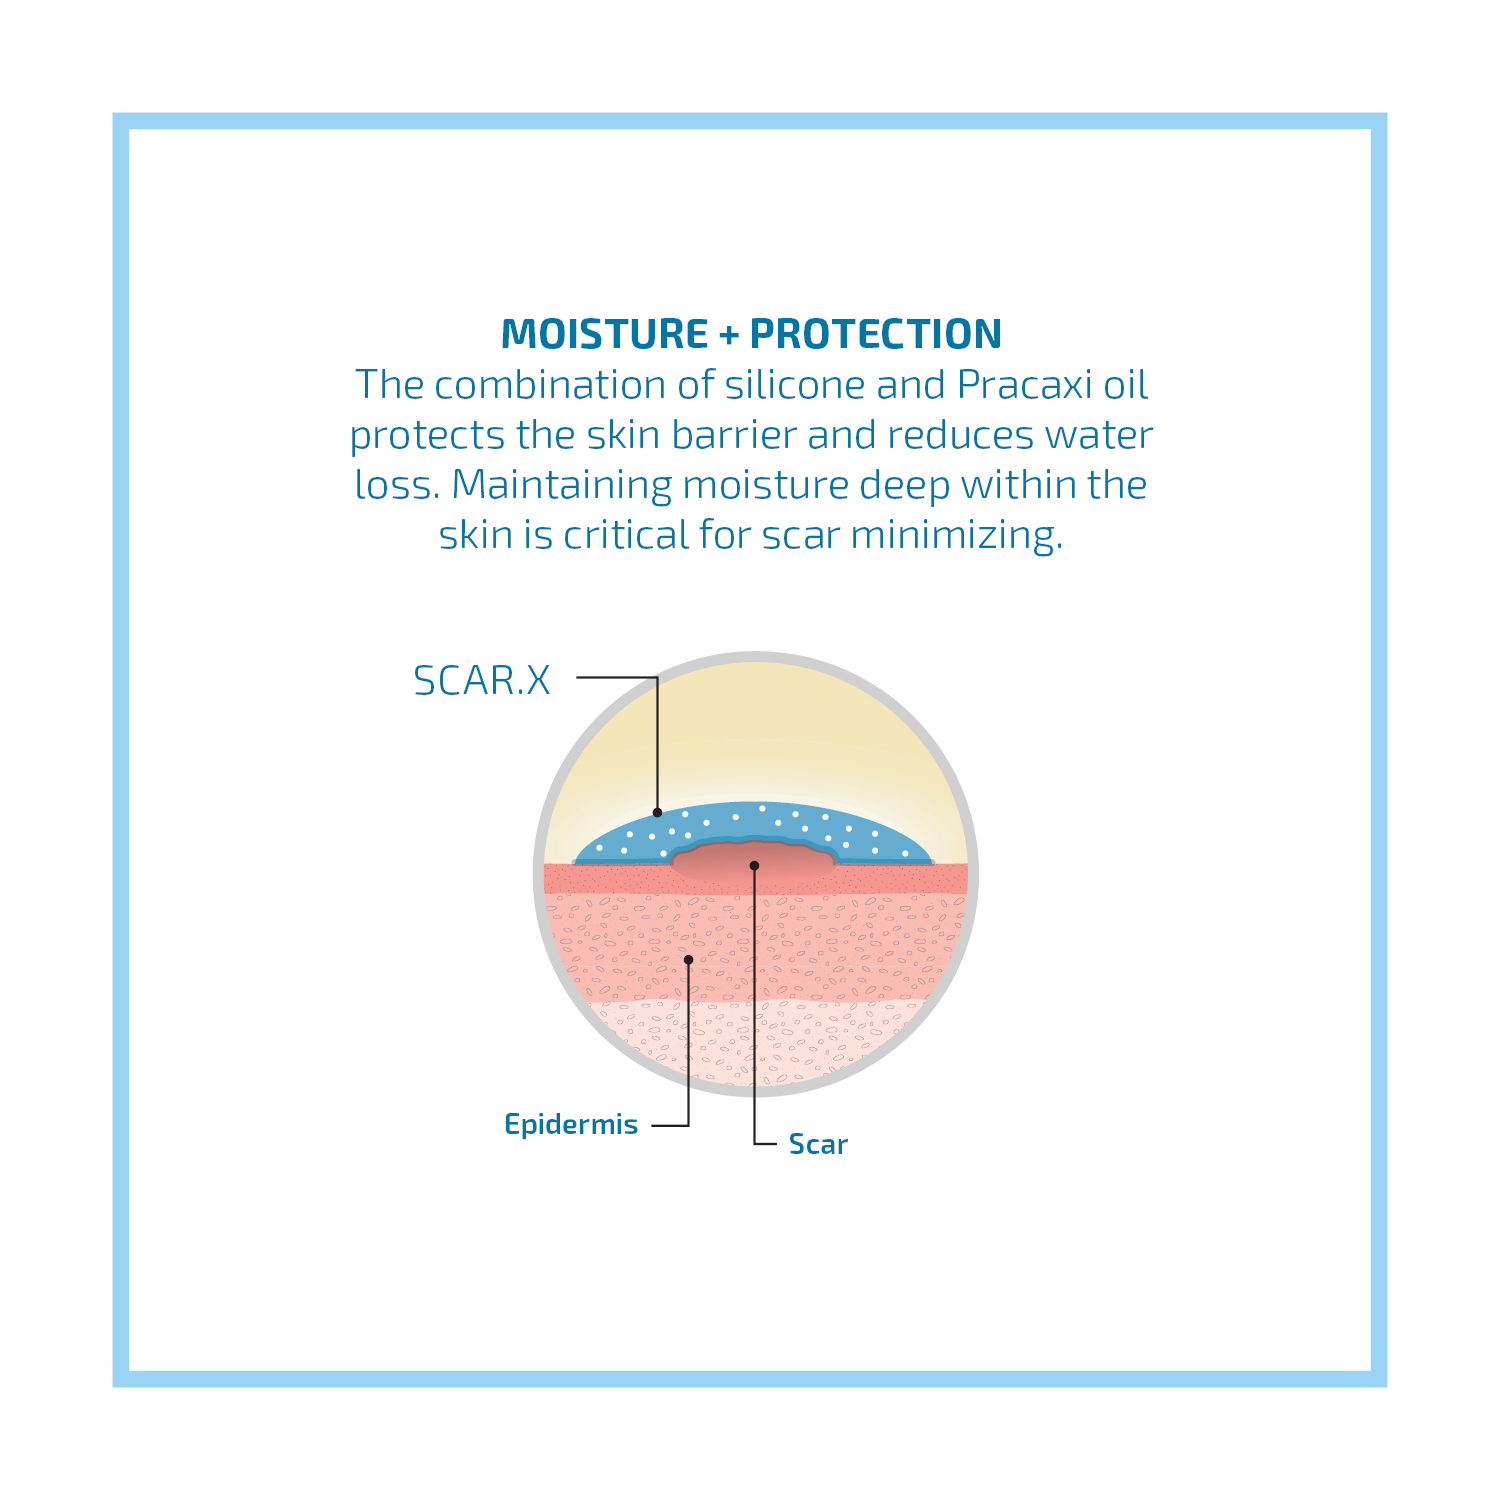 Moisture and Protection Graphic 5x5.jpg